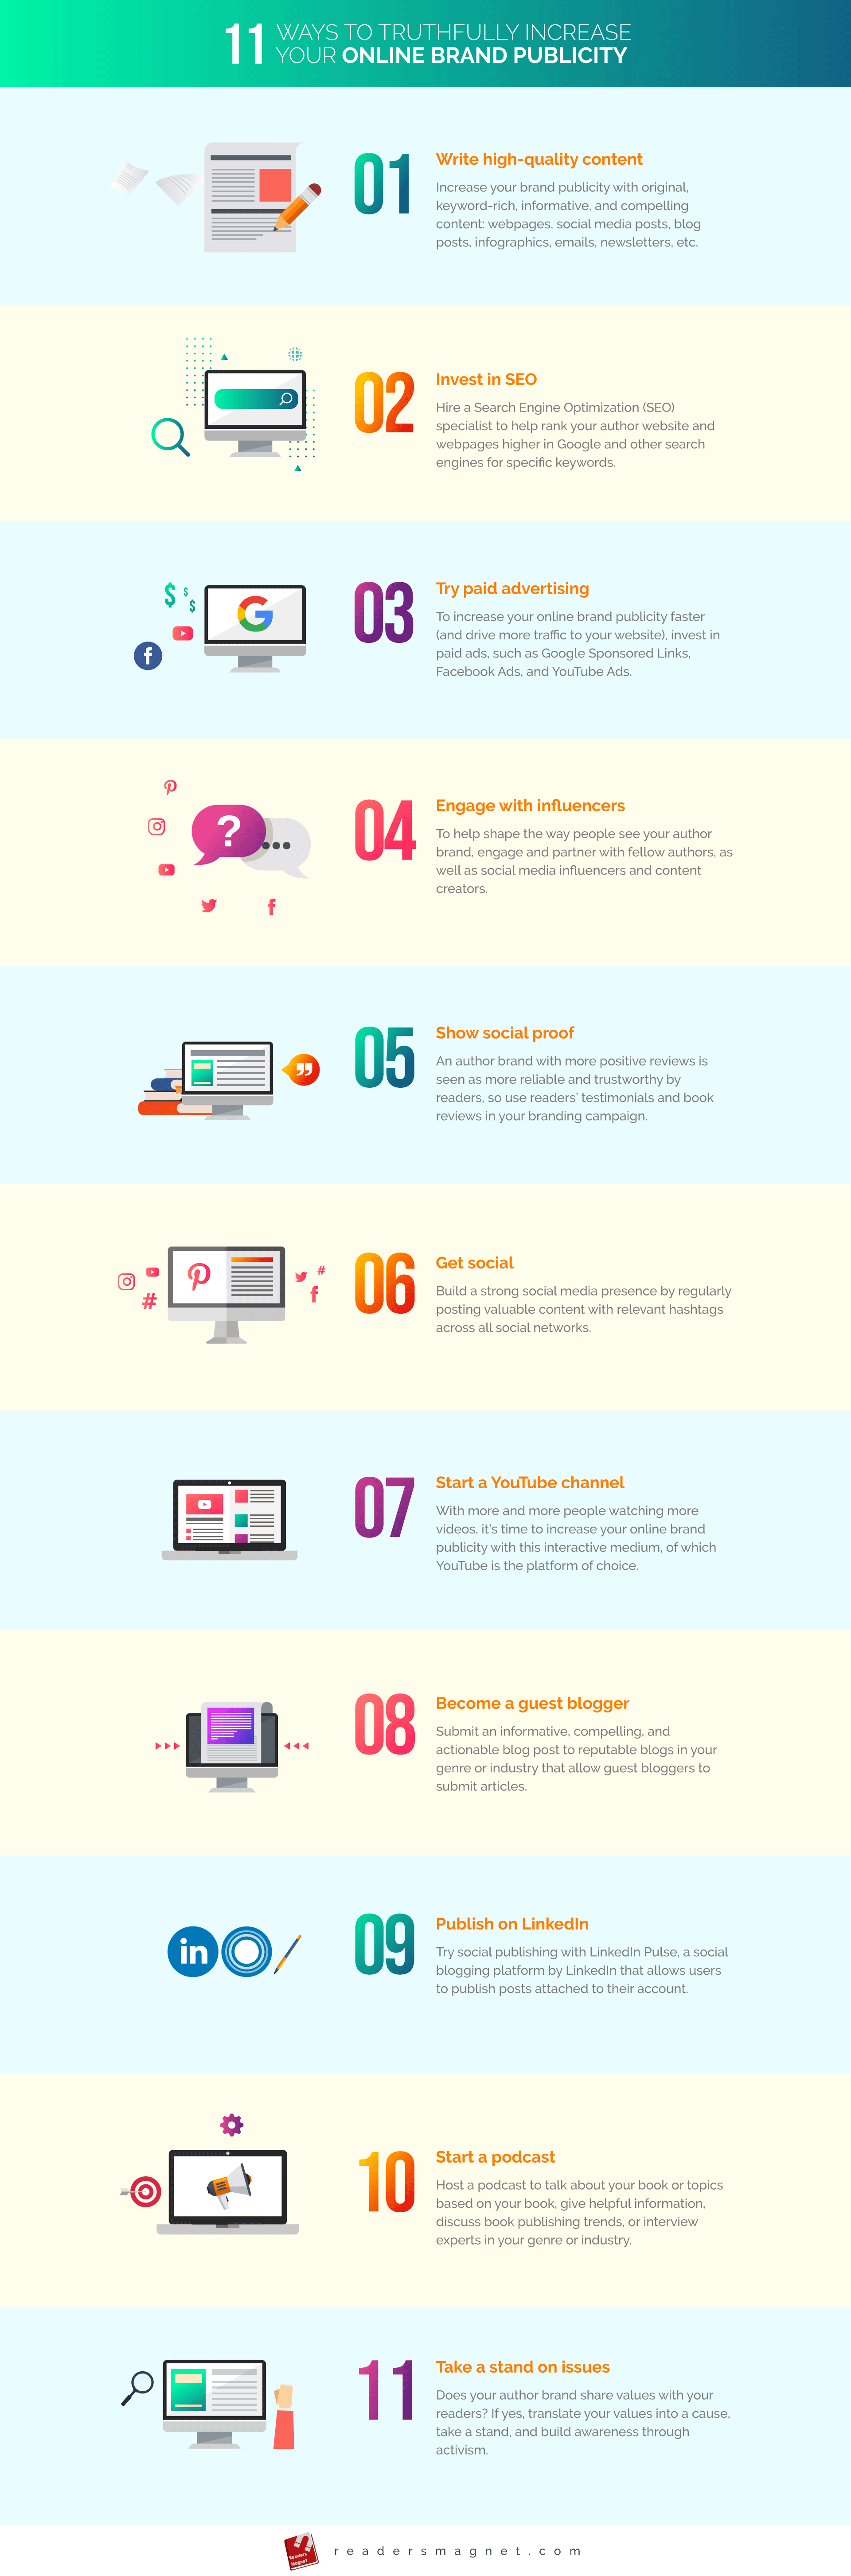 11 Ways To Truthfully Increase Your Online Brand Publicity infographic